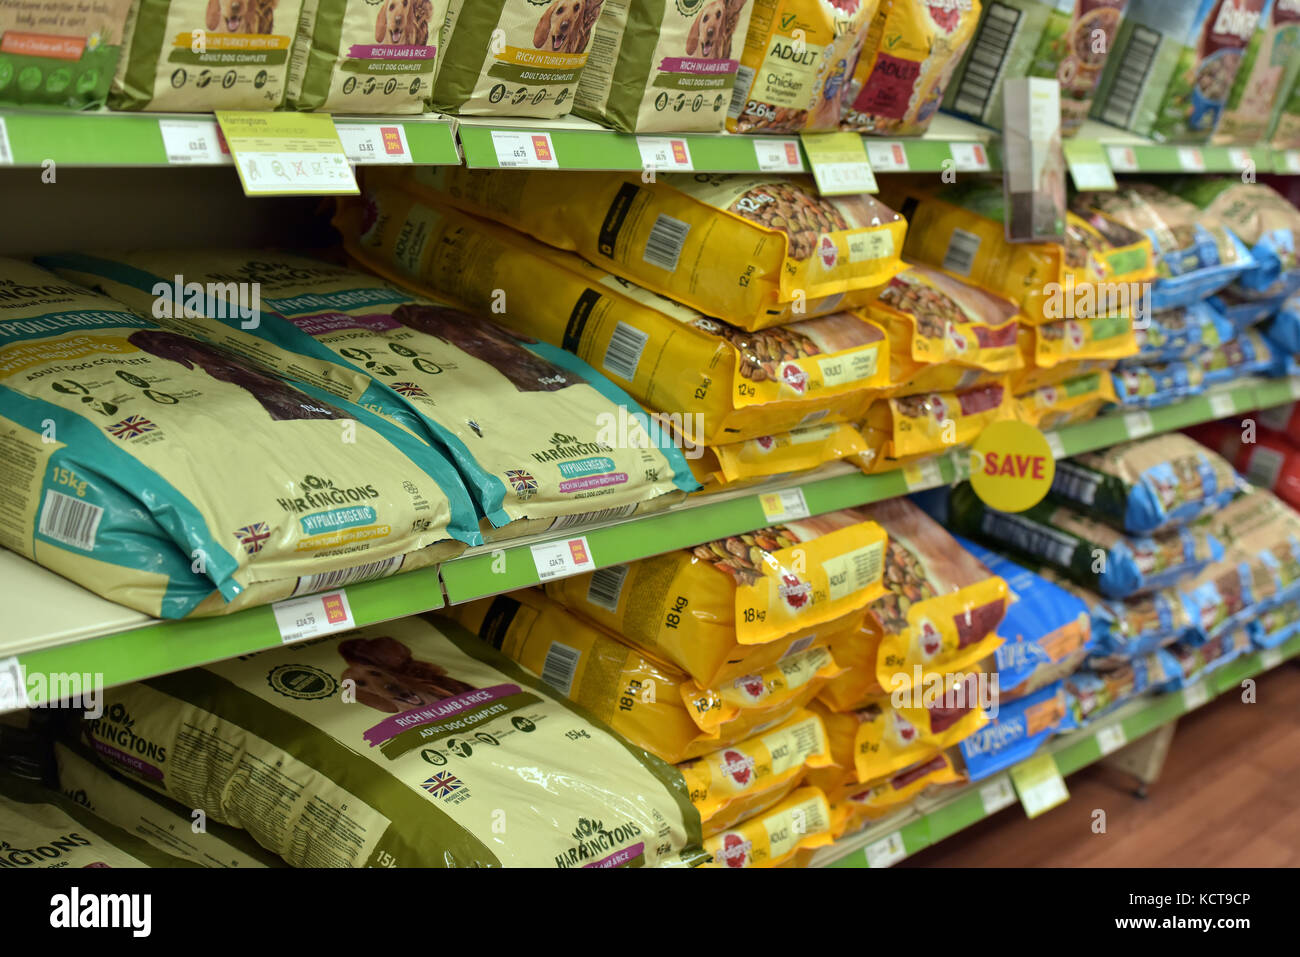 Pet Shops Stock Photos Images Alamy Cp Petfood Nature Bridge Kitten Cat Food 15kg A Variety Of Different Products For Sale On Full Shelves At Major